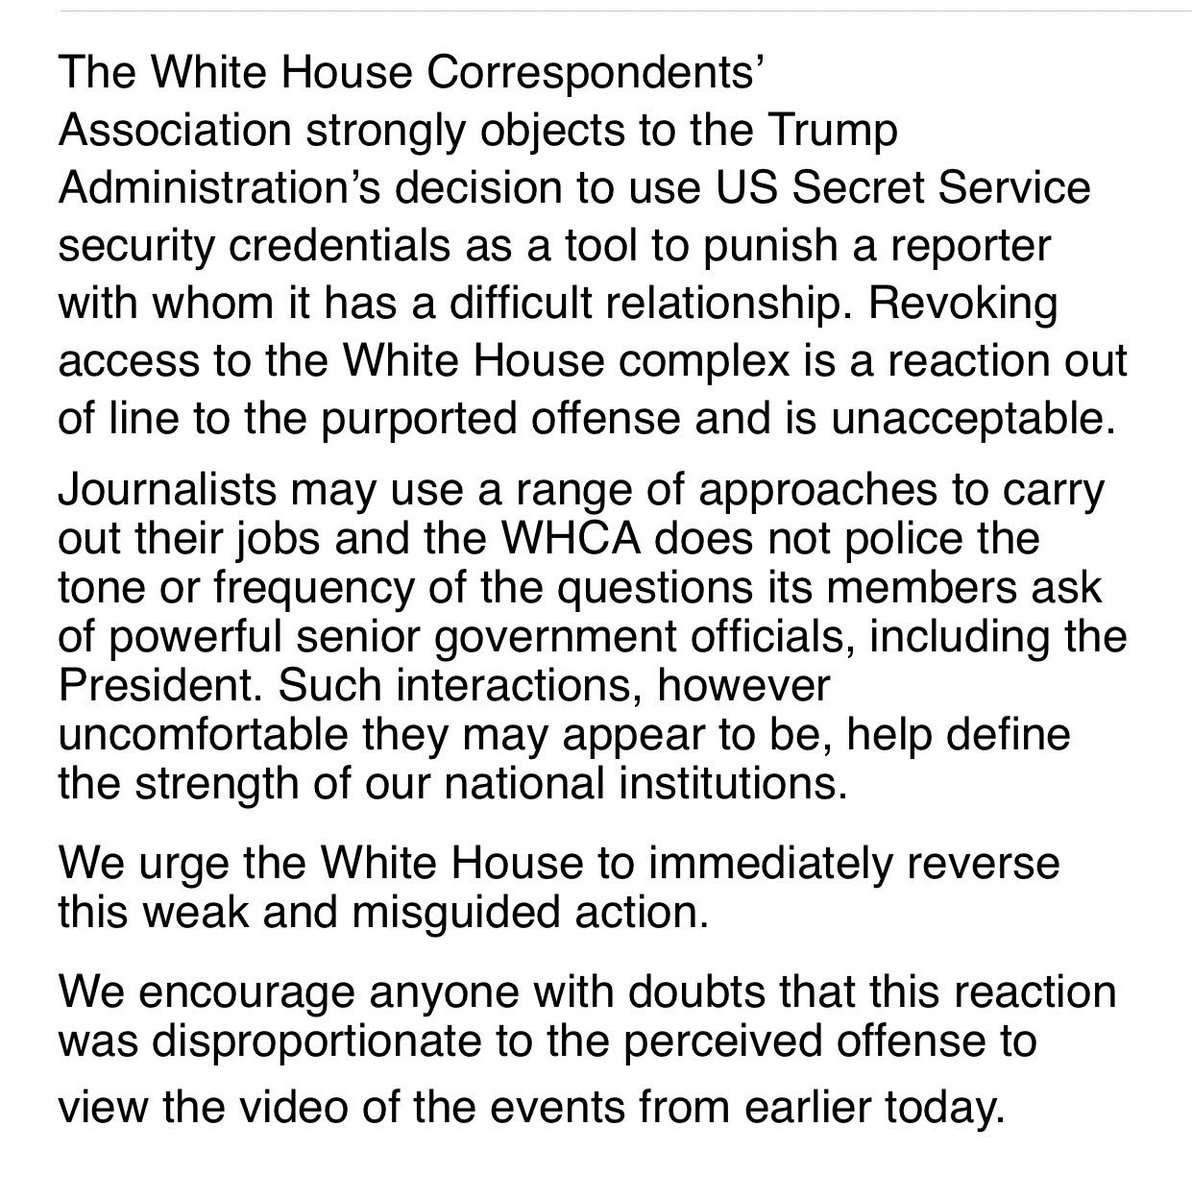 JUST RELEASED: The WH Correspondents' Association statement on the revocation of Jim Acosta's access to the White House complex.